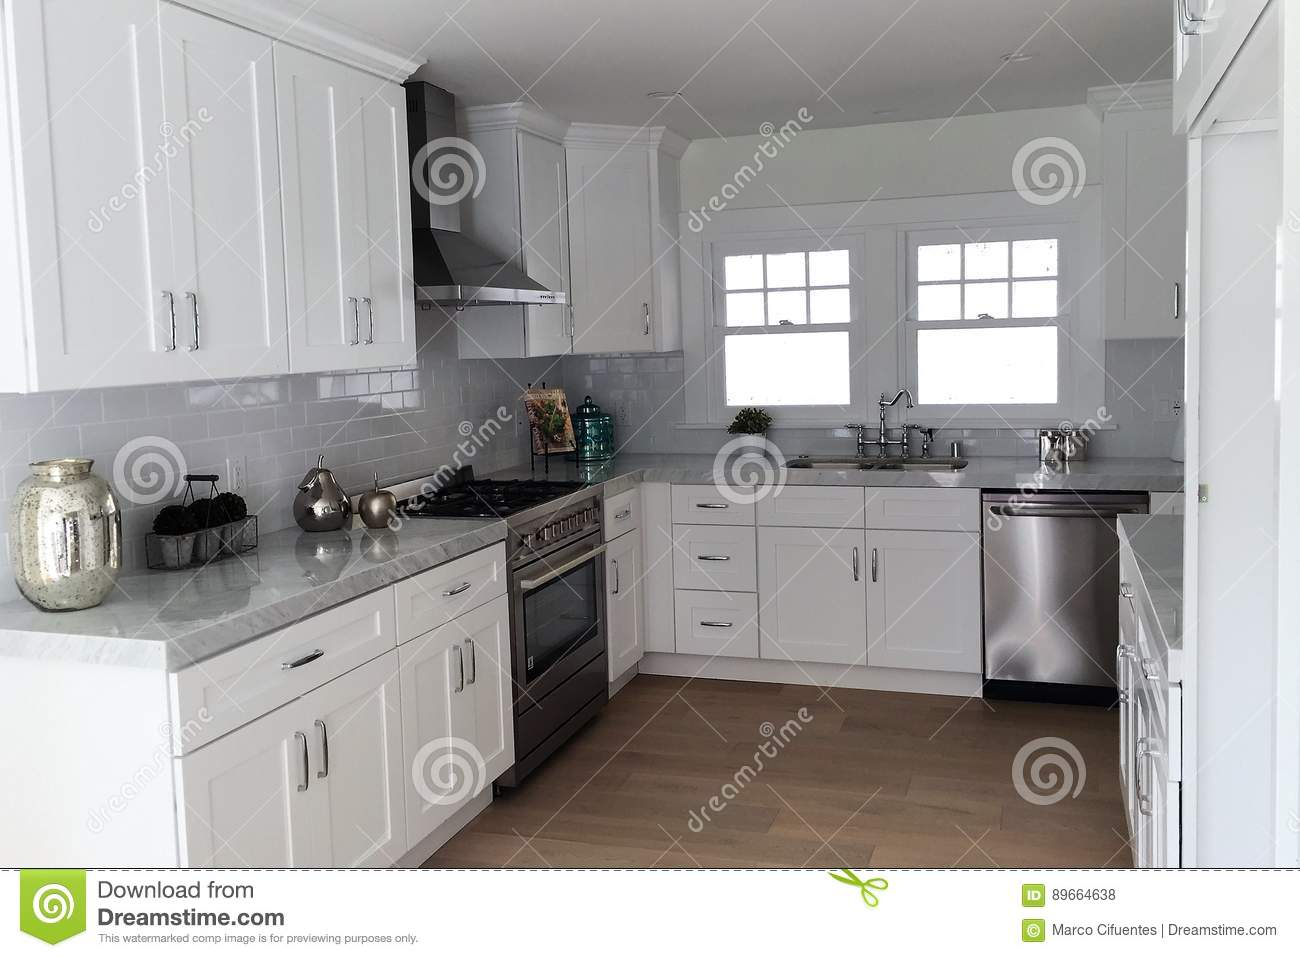 Genial Marbel Countertops, White Cabinetes And Stainless Steel Appliances